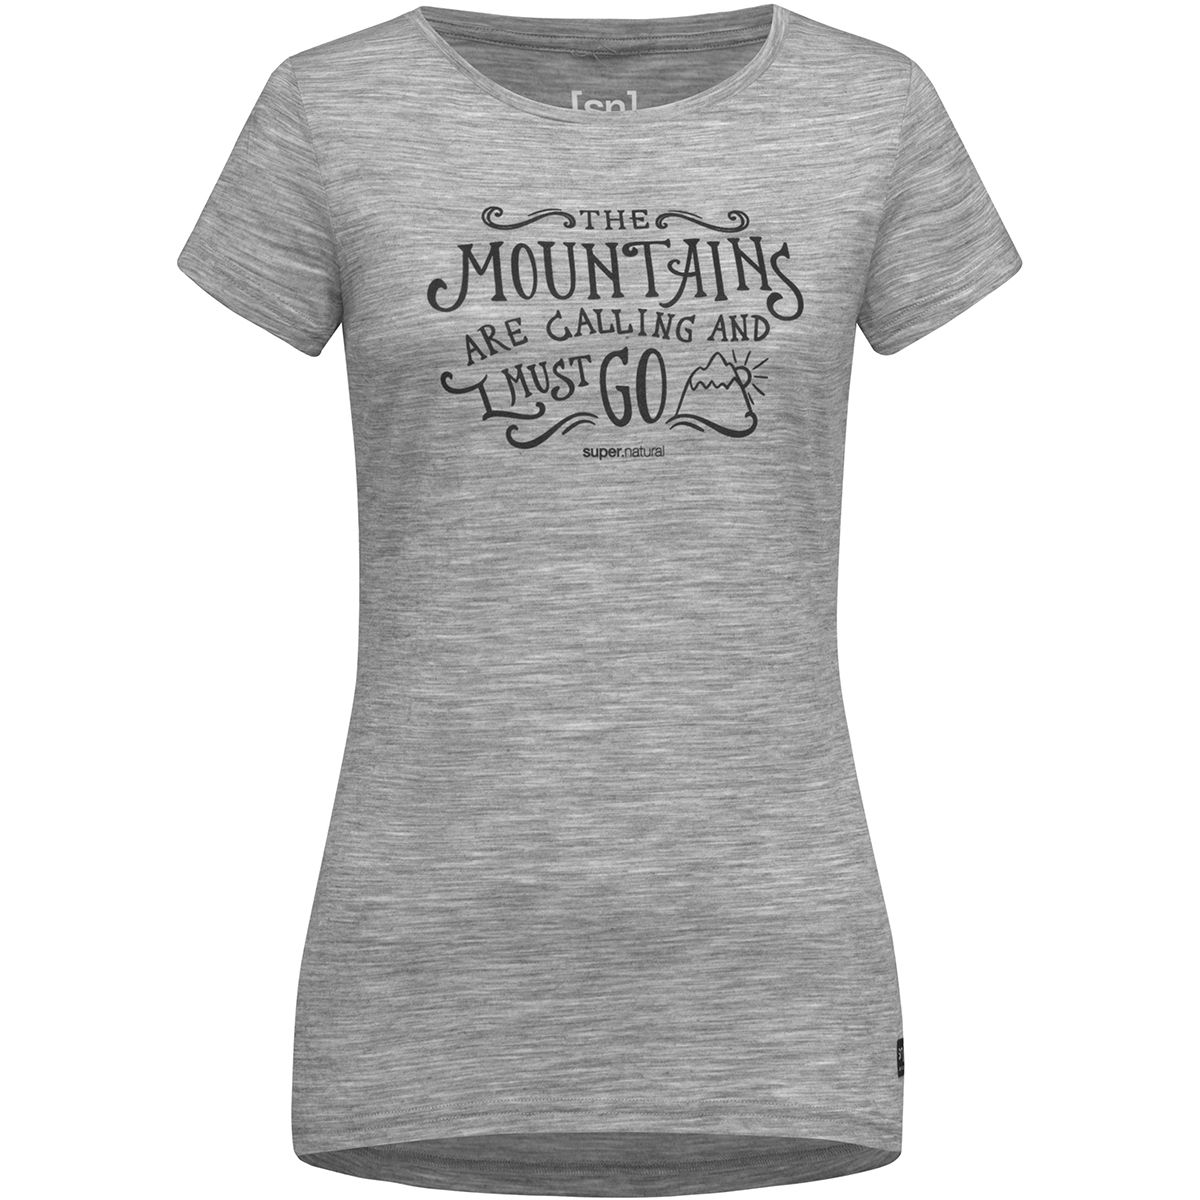 Super.Natural Damen Print Mountain Call T-Shirt (Größe XS, Grau) | T-Shirts Merino > Damen